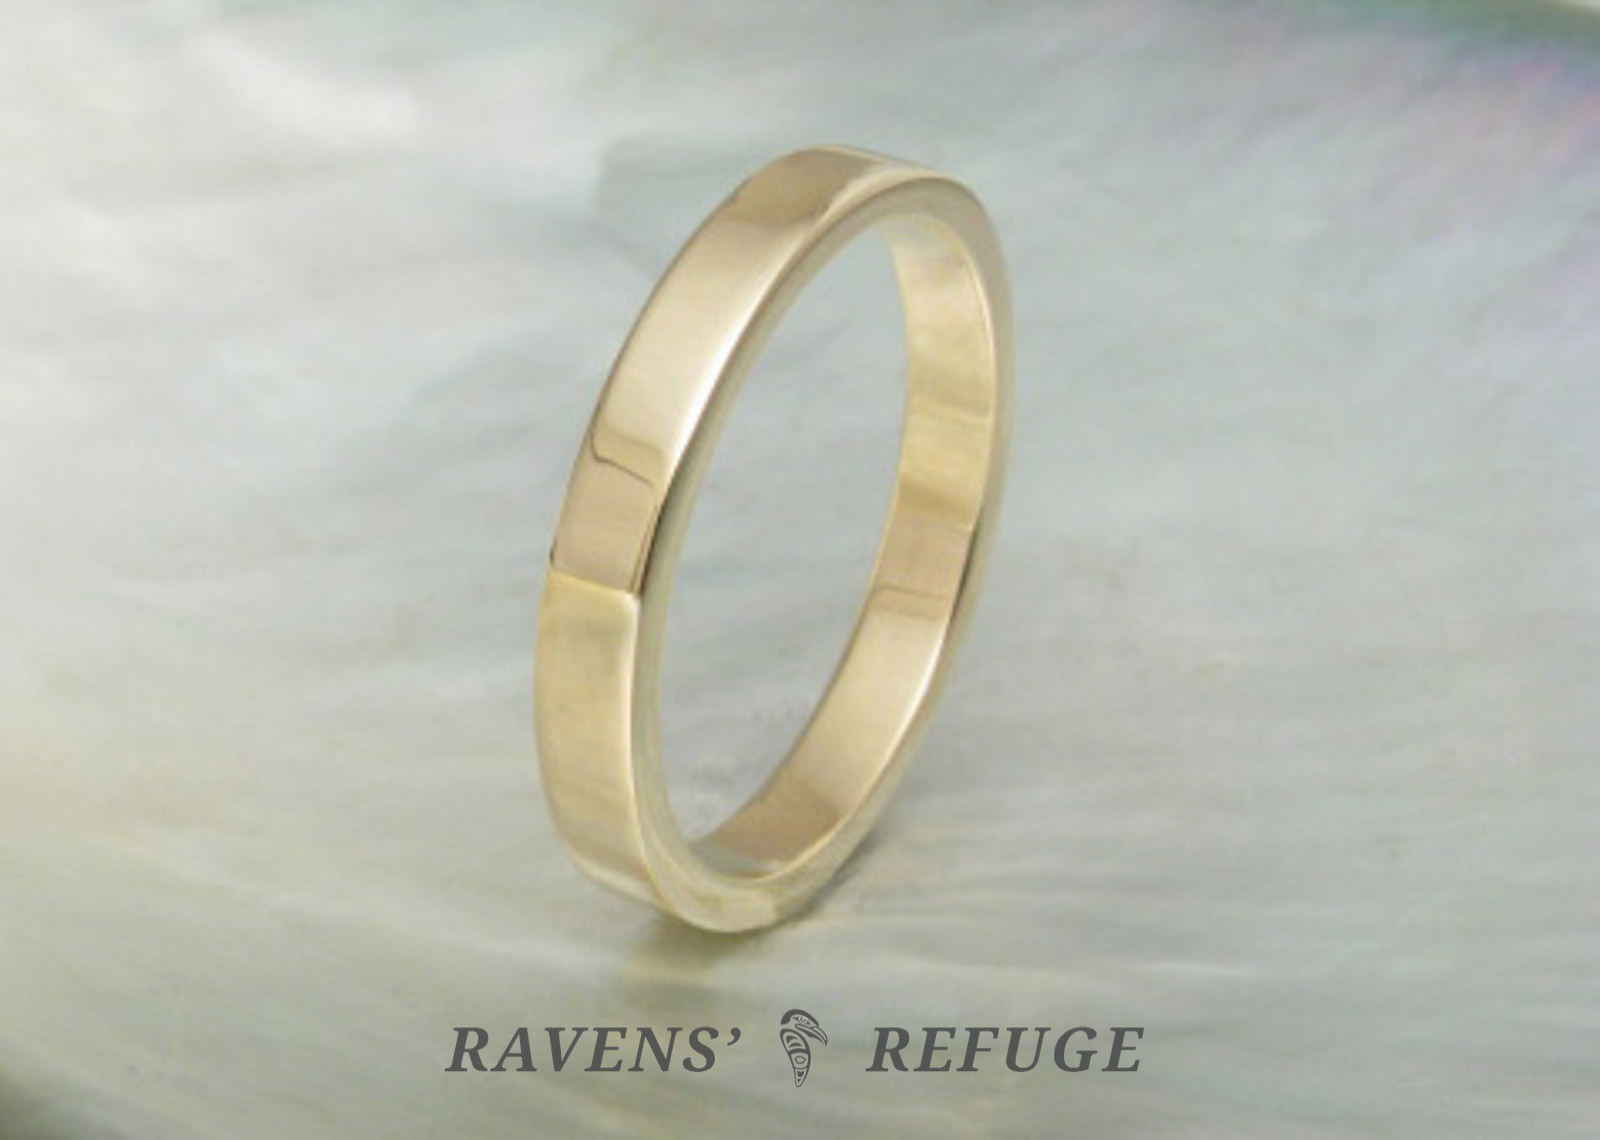 flat wedding band  simple gold wedding ring  Ravens Refuge